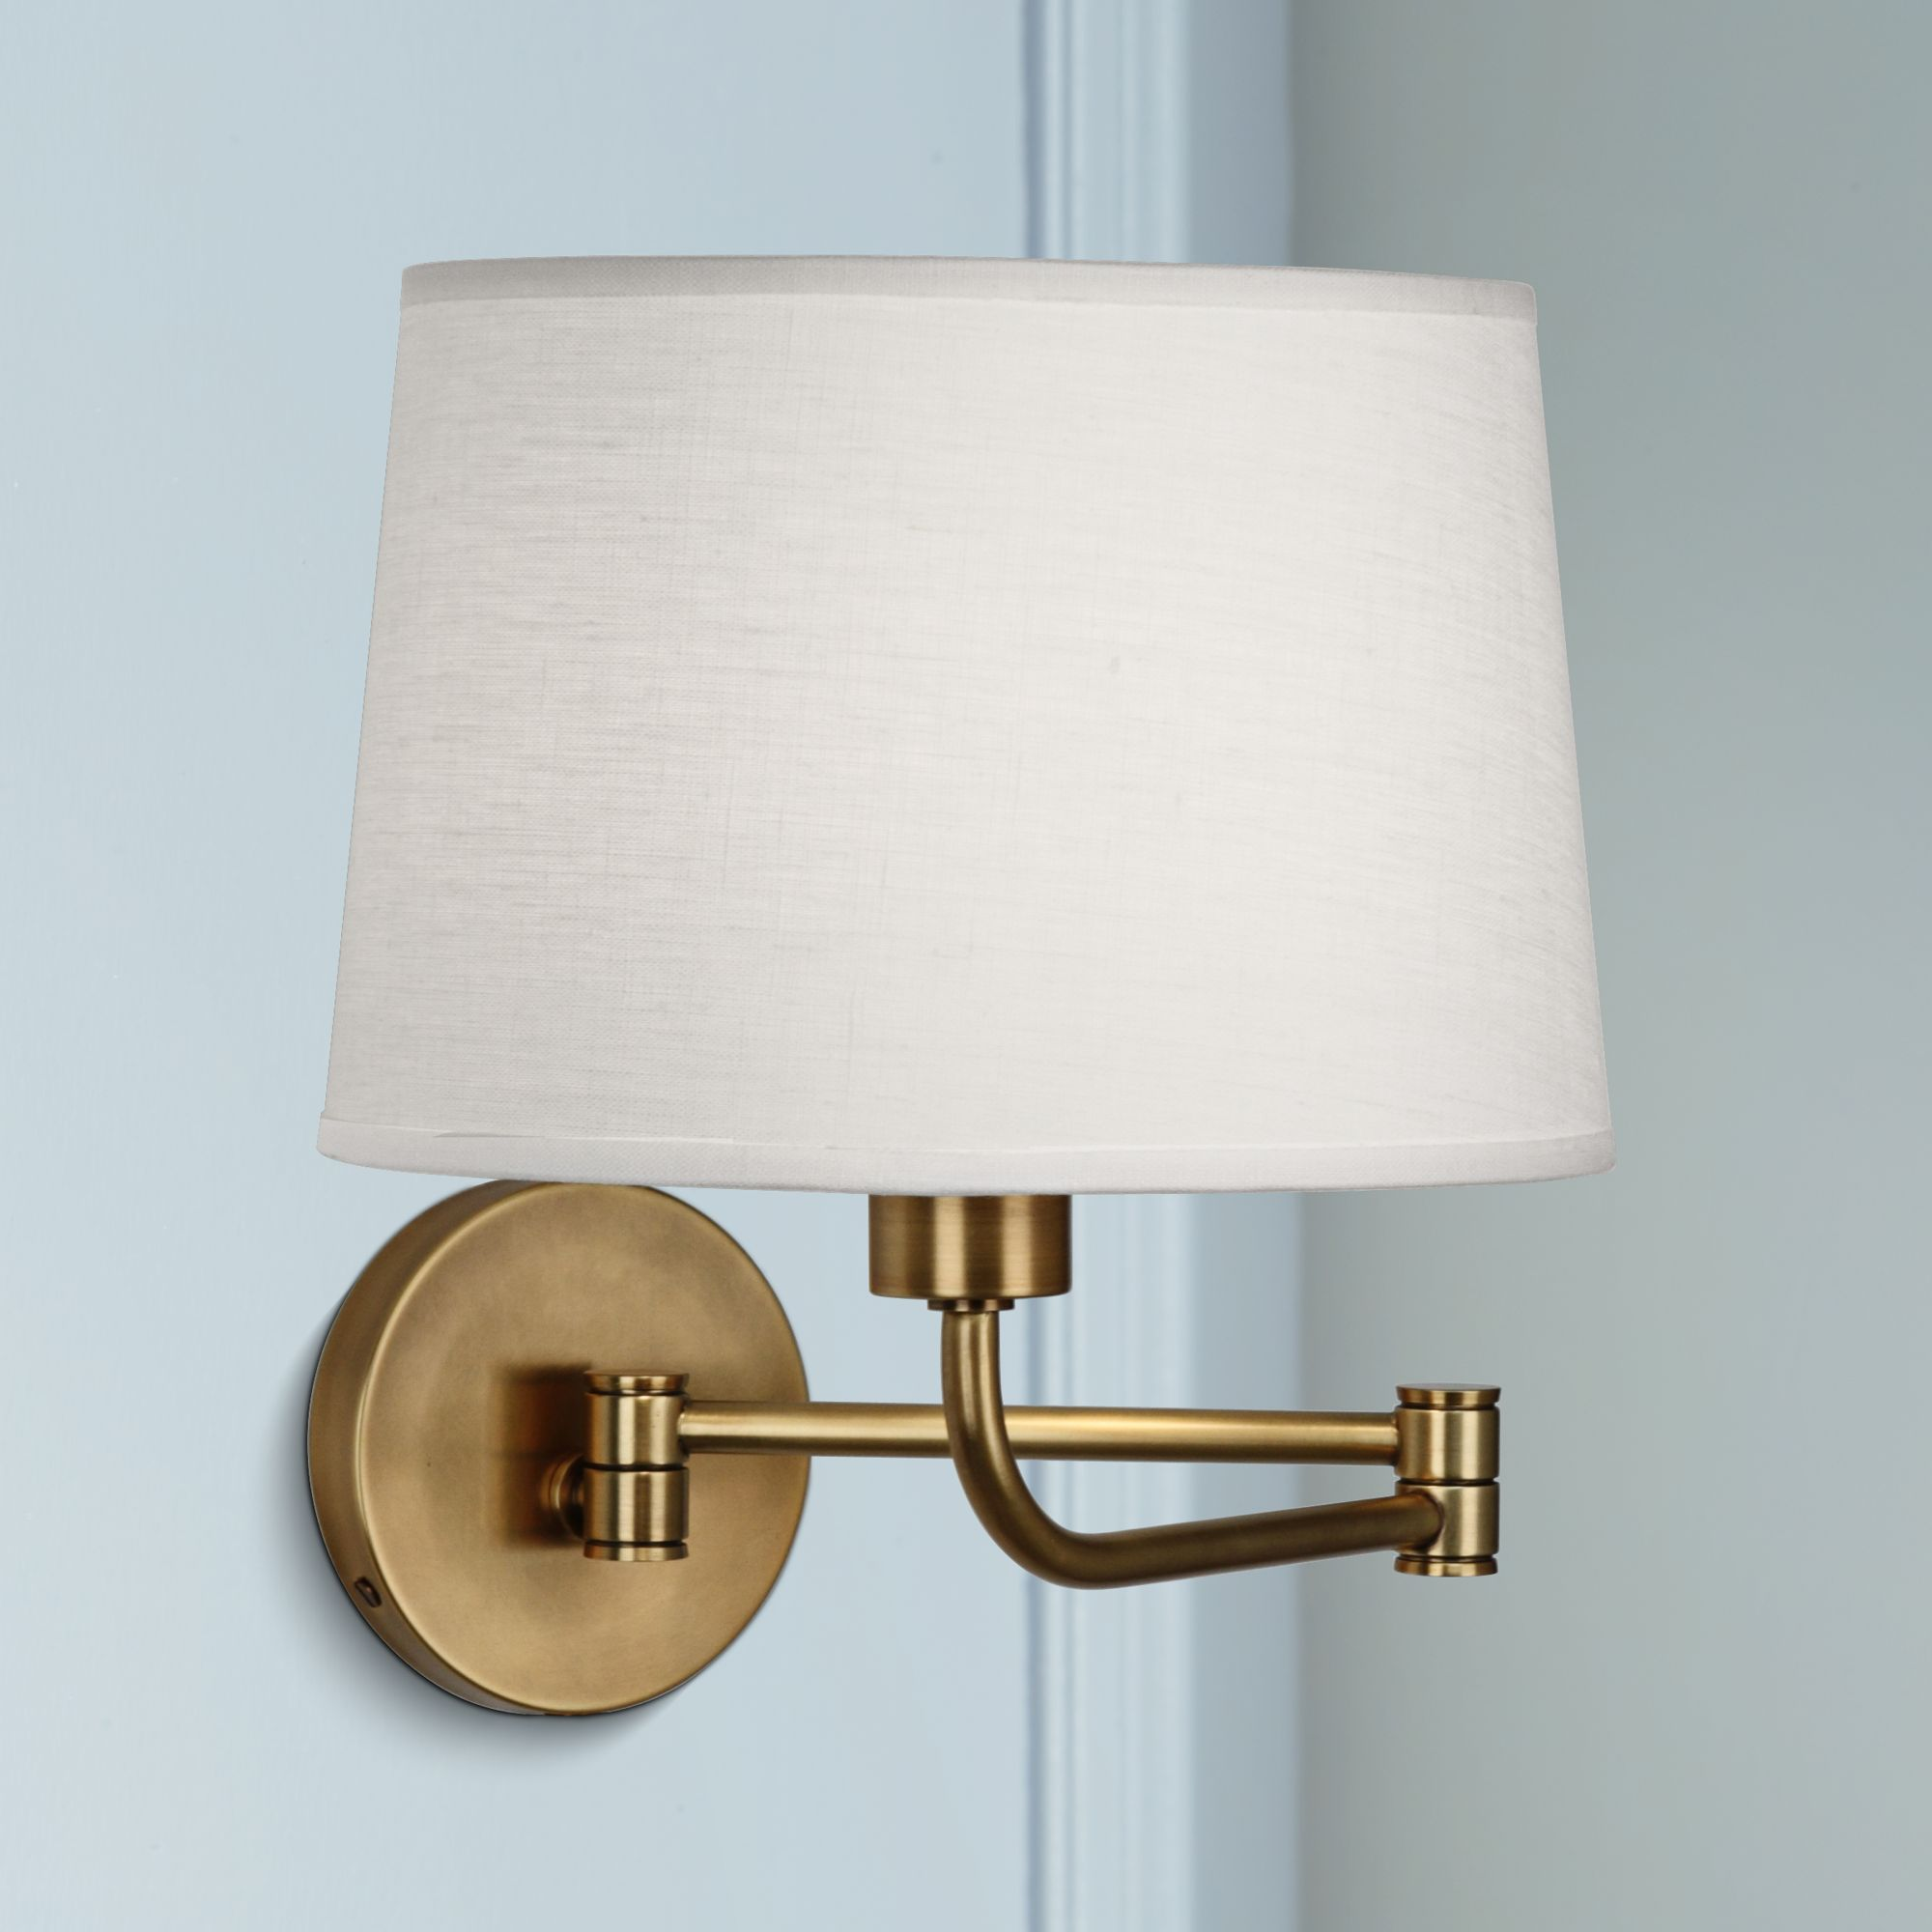 Robert Abbey Koleman Brass Plug In Swing Arm Wall Lamp